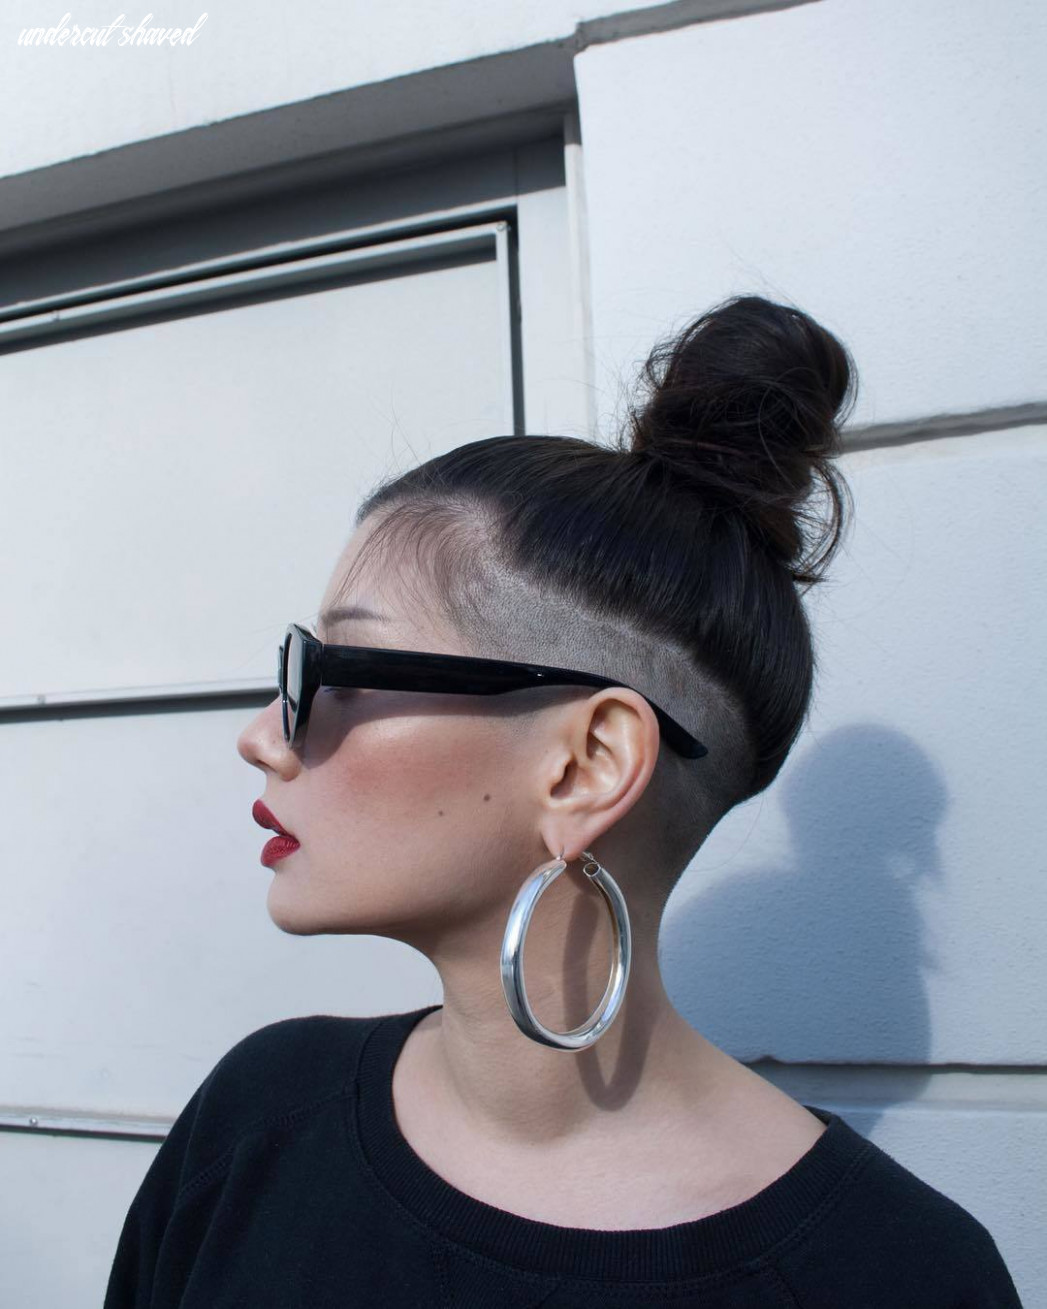 8 bold shaved hairstyles for women | shaved hair designs undercut shaved